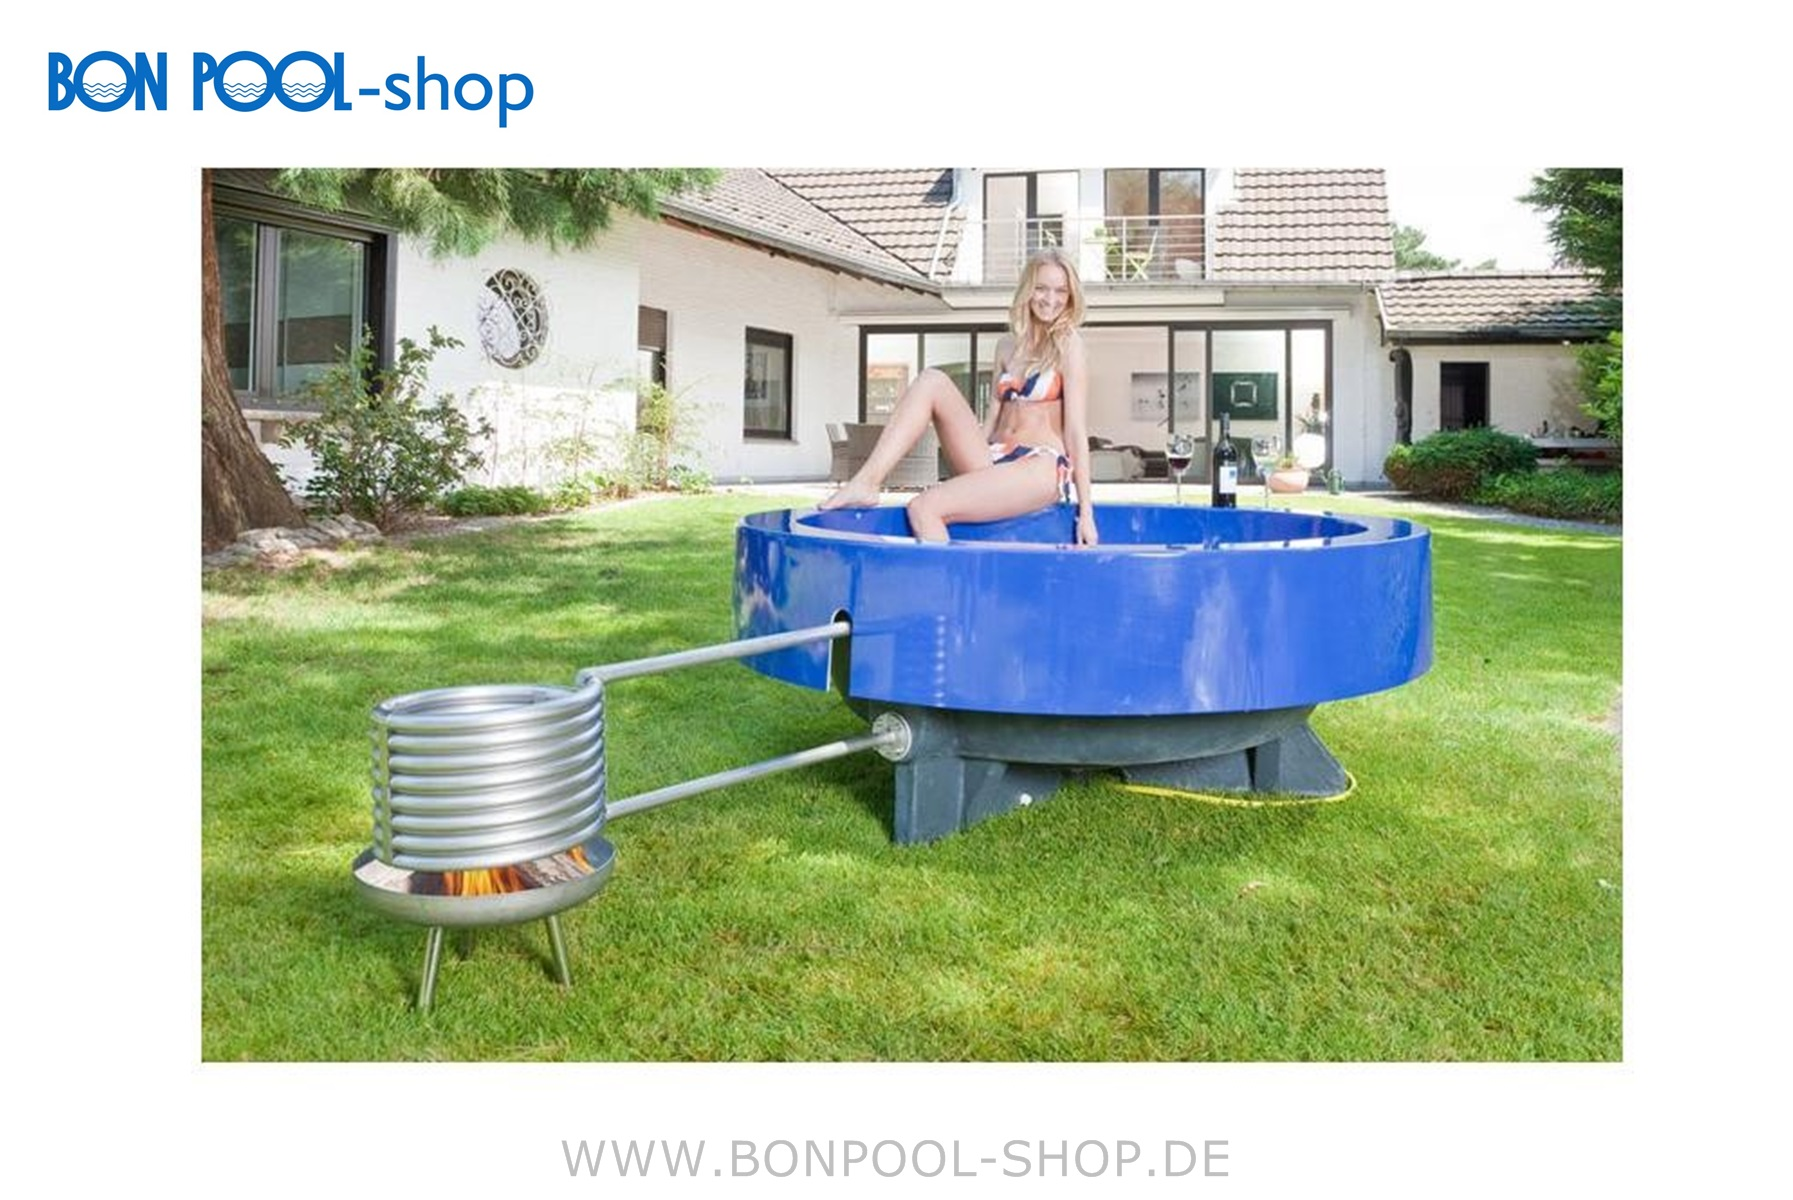 Poolheizung Mit Feuer Hot Tub 2 Blau Outdoor Pool Bon Pool